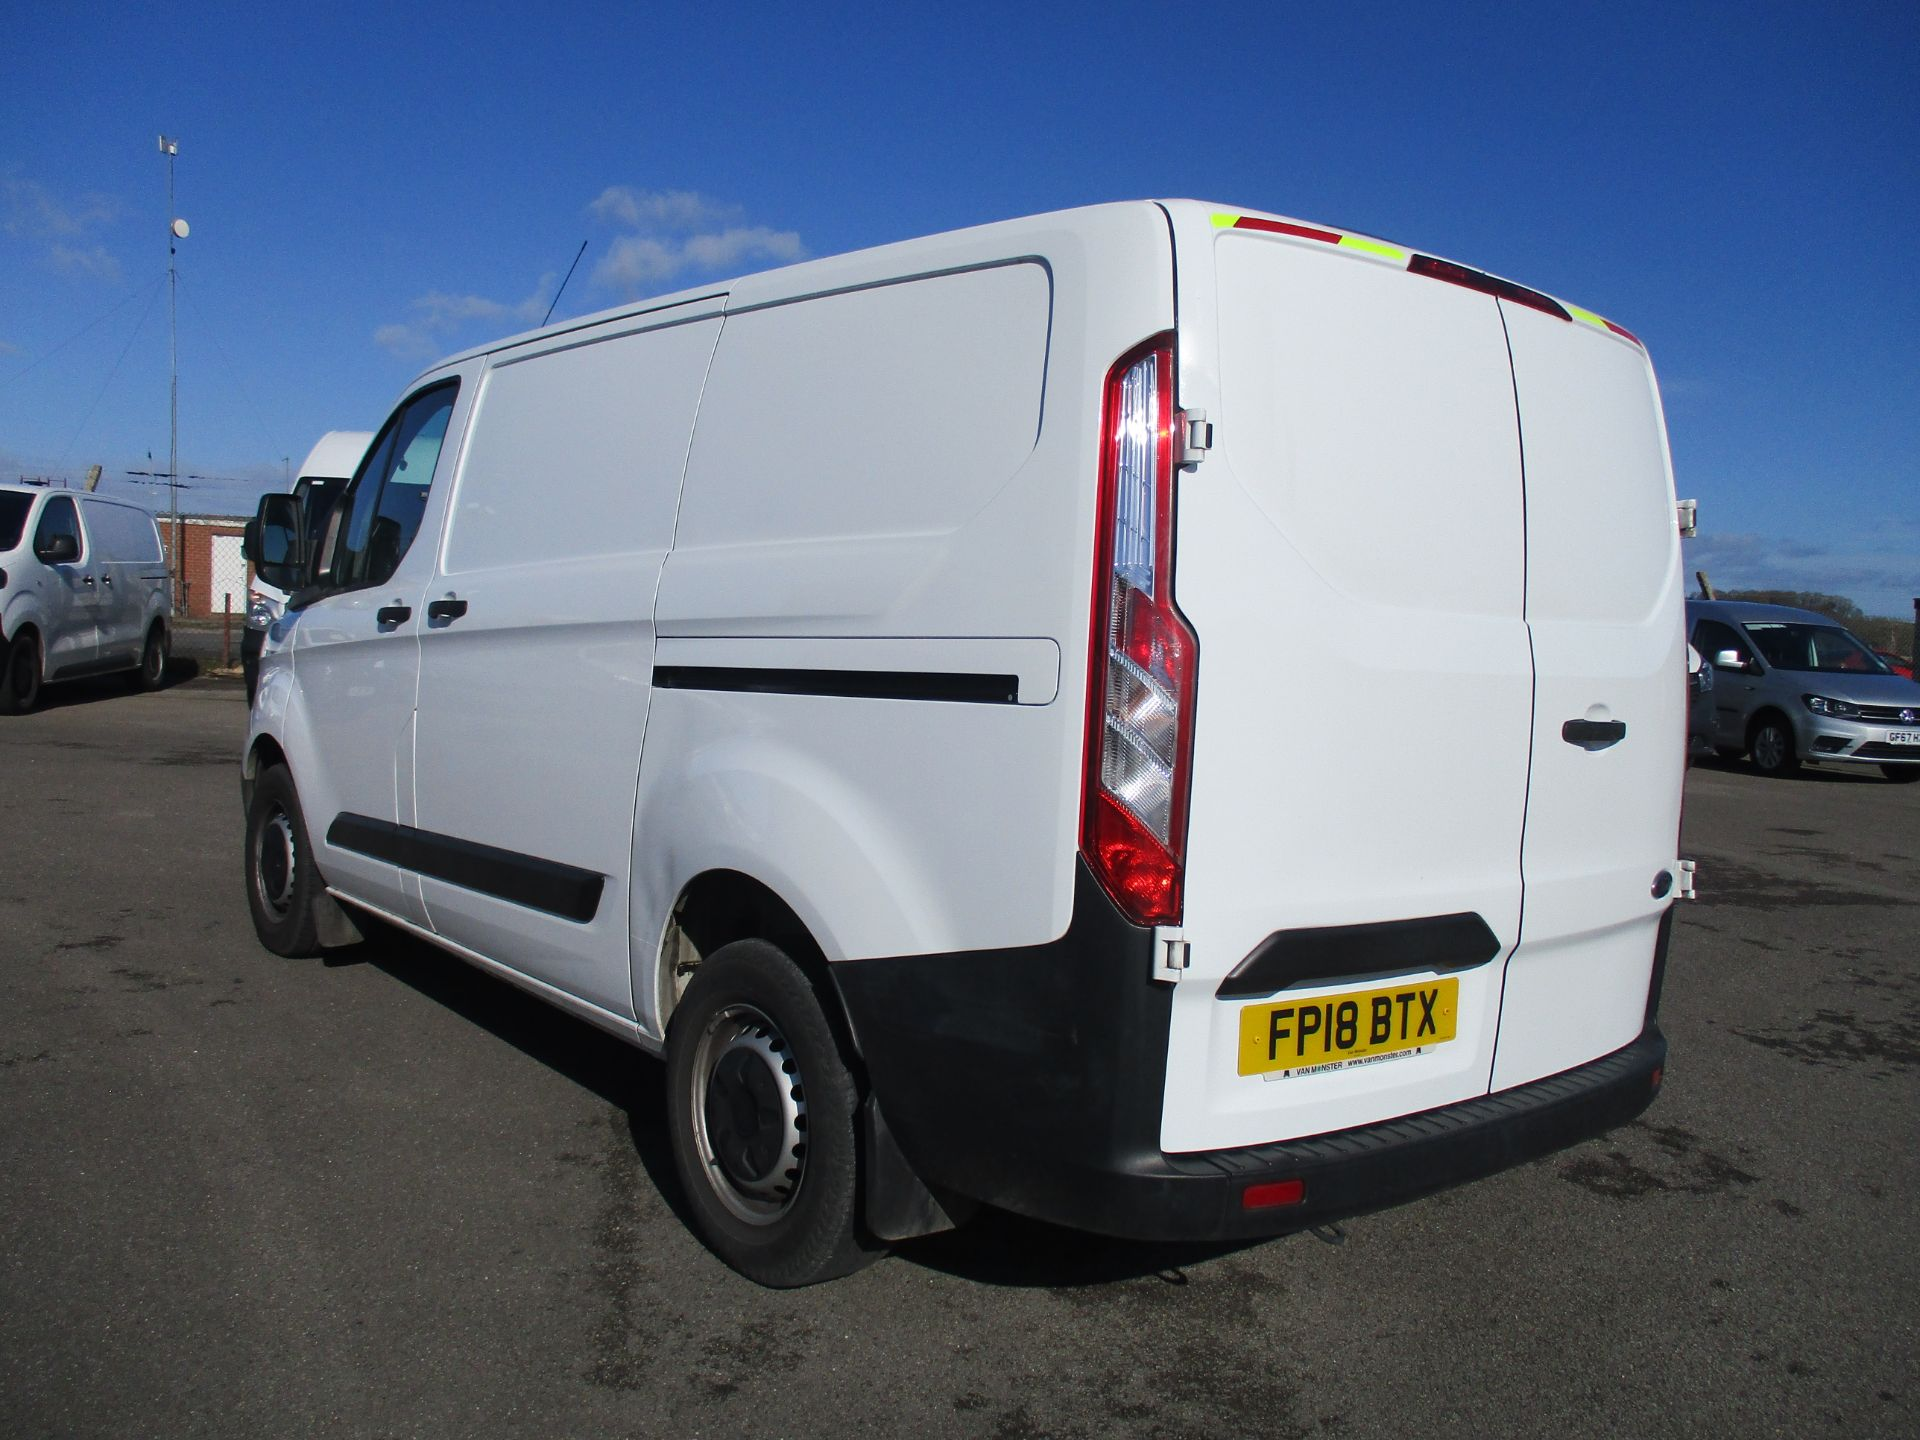 2018 Ford Transit Custom 300 L1 DIESEL FWD 2.0 TDCI 105PS LOW ROOF VAN EURO 6 (FP18BTX) Thumbnail 7